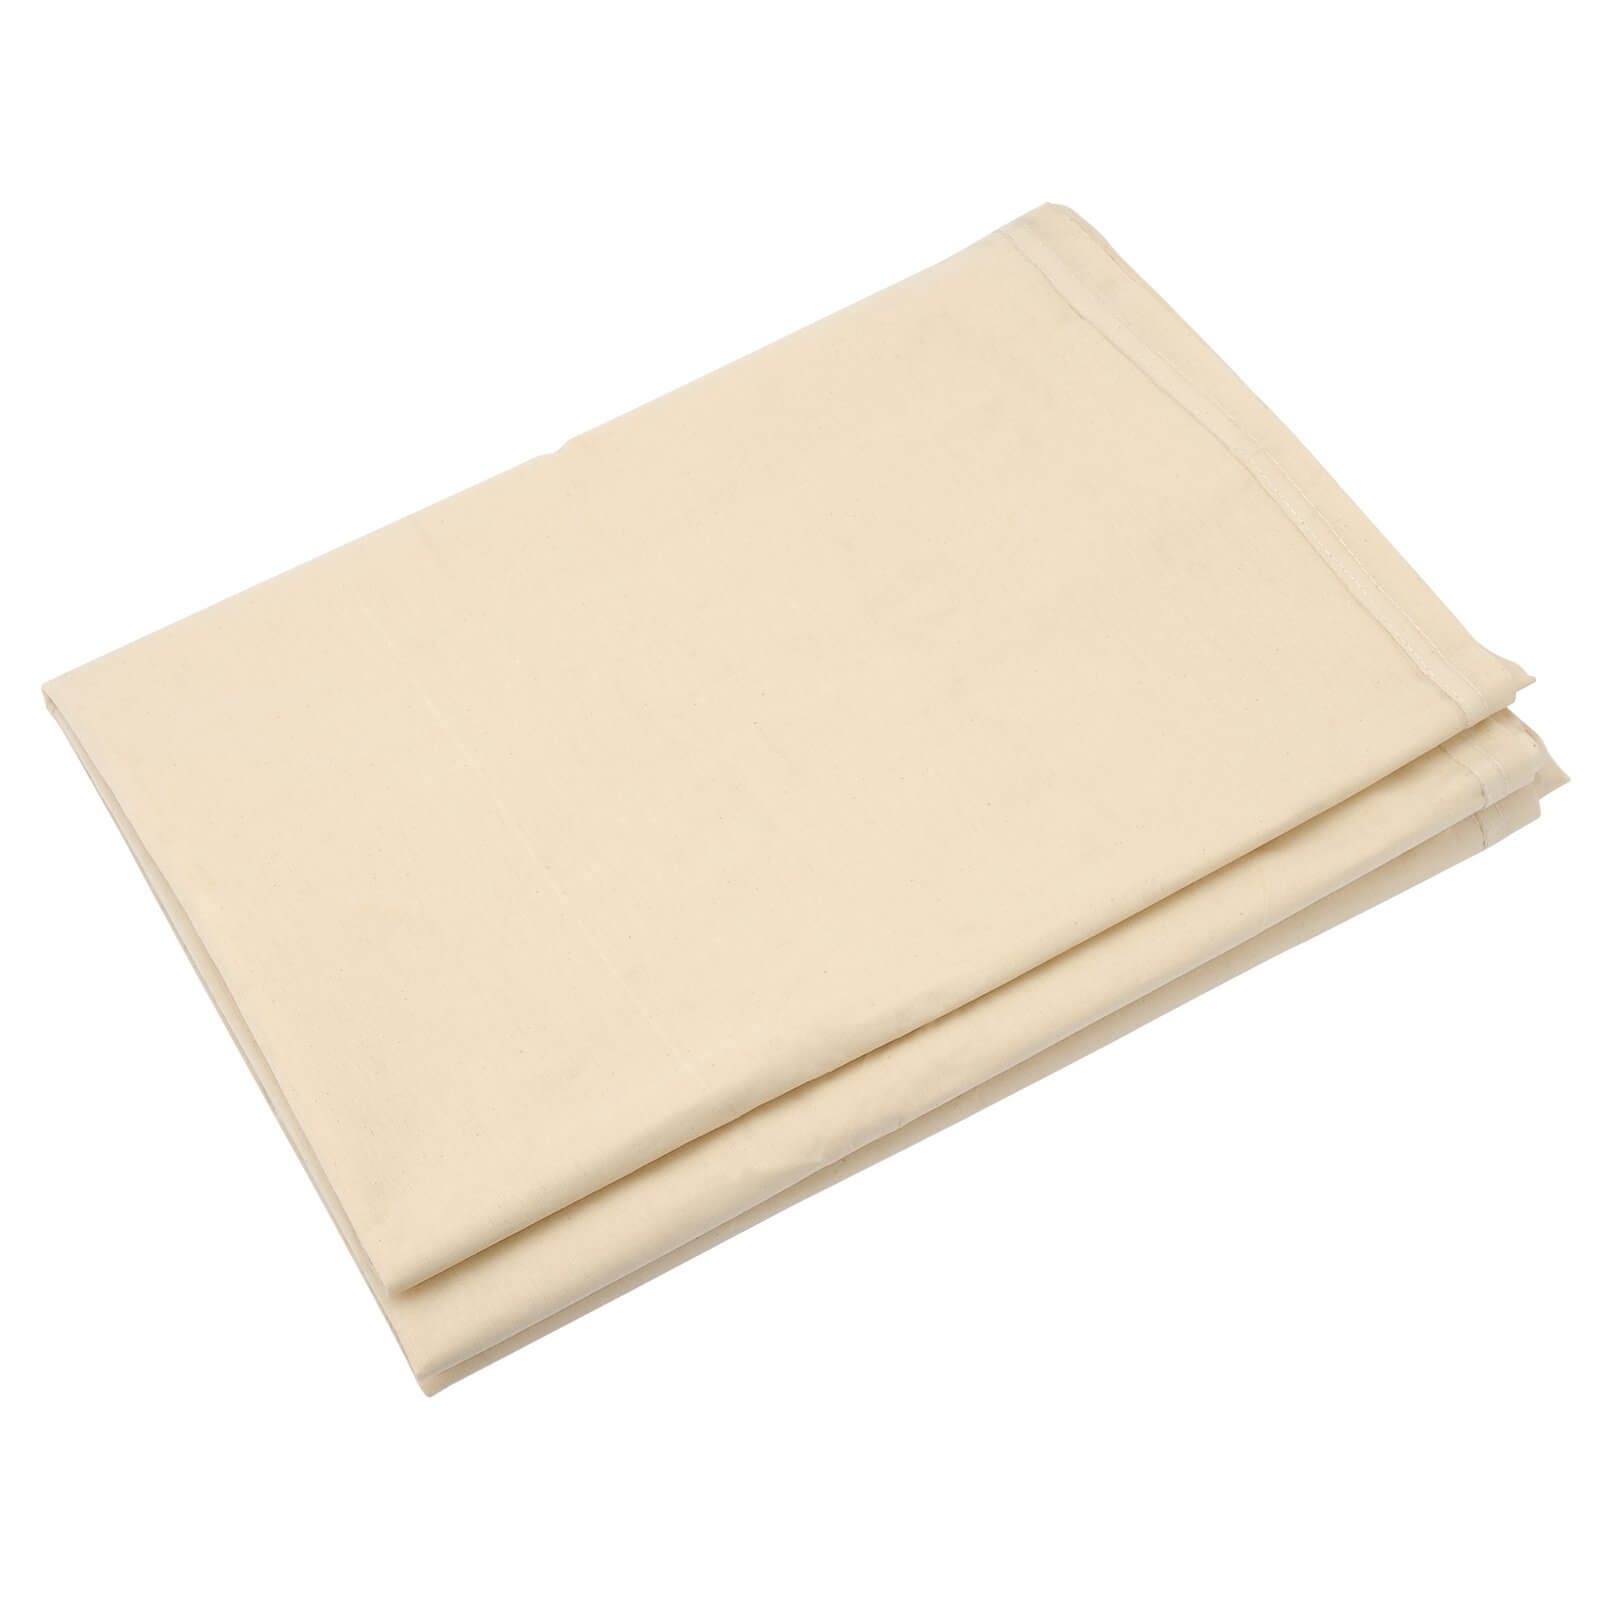 Image of Draper Laminated Cotton Dust Sheet 3.6m 2.7m Pack of 1